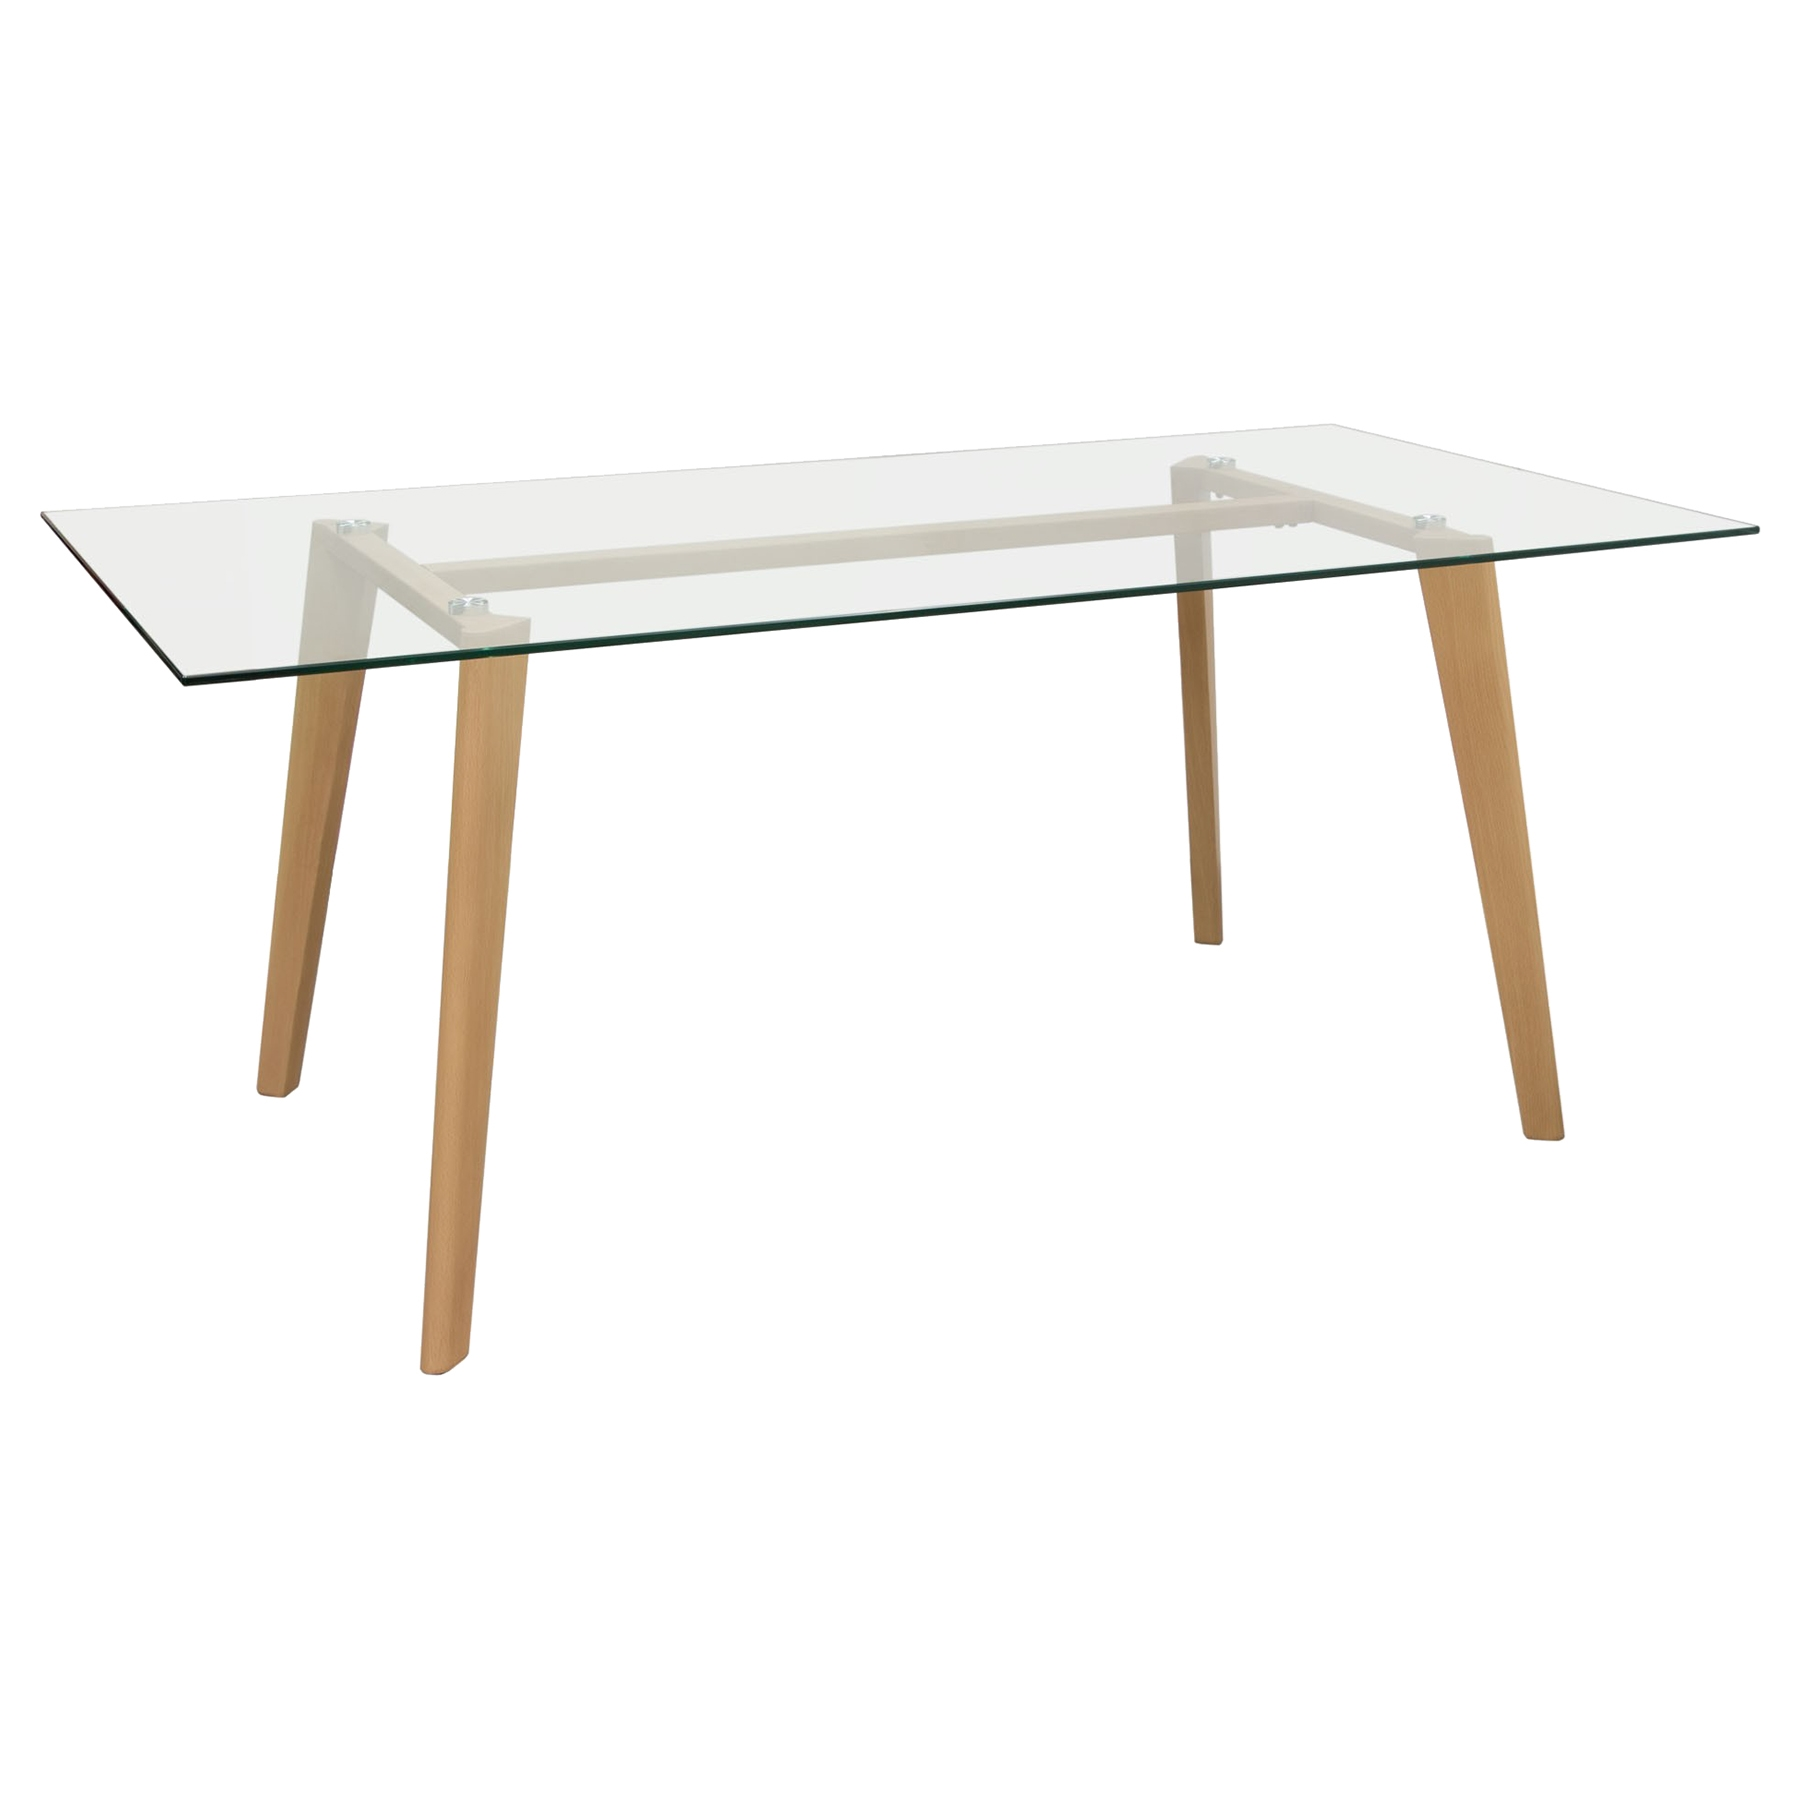 verb rectangular dining table